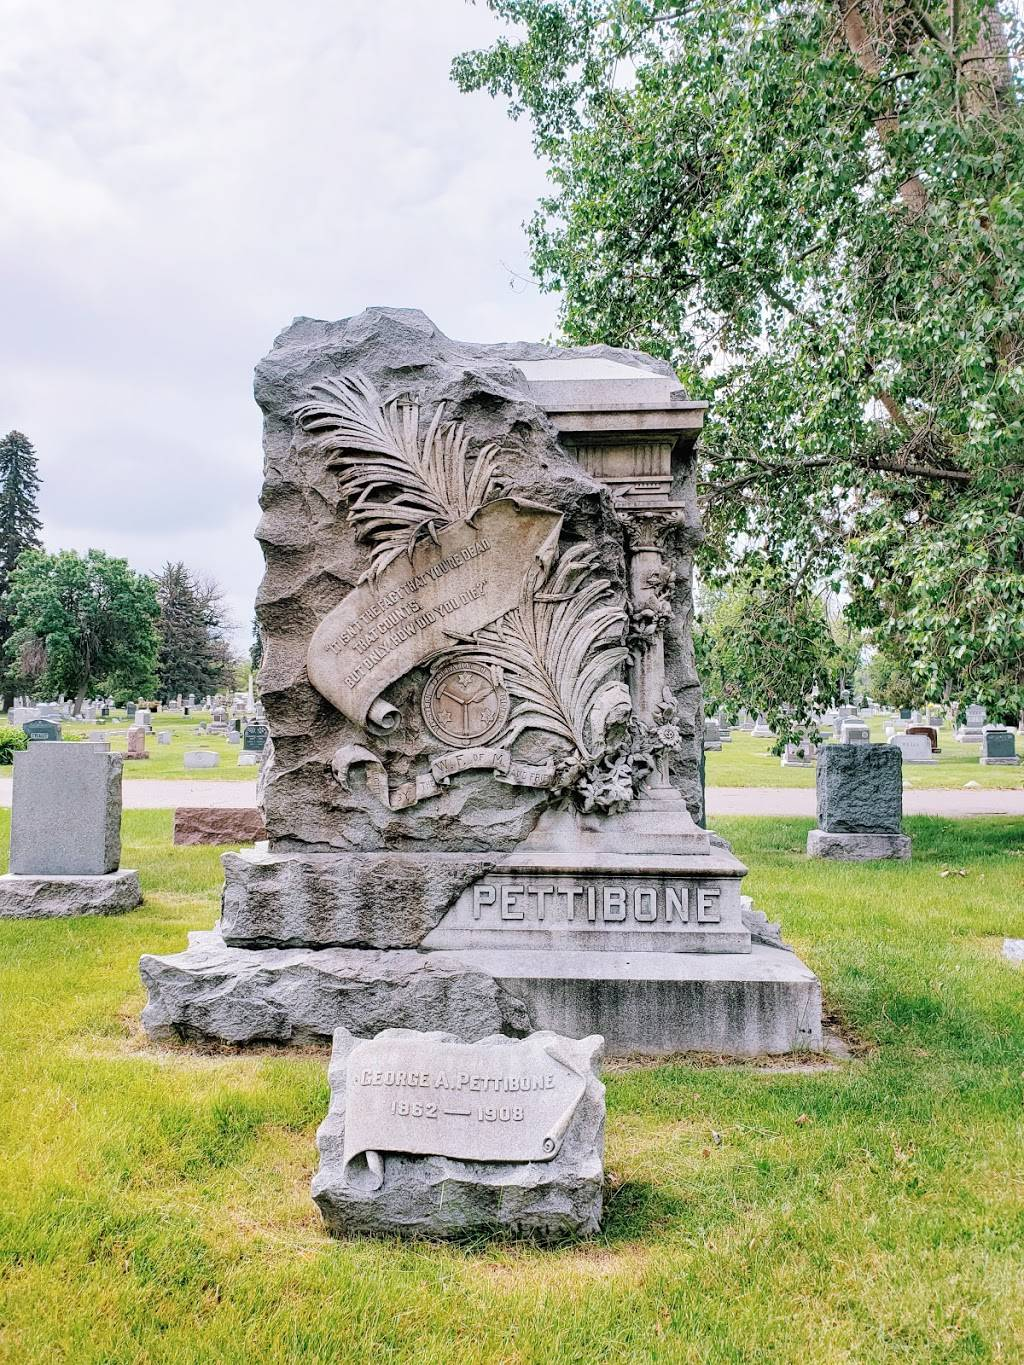 Fairmount Cemetery - cemetery  | Photo 8 of 9 | Address: 430 S Quebec St, Denver, CO 80247, USA | Phone: (303) 399-0692